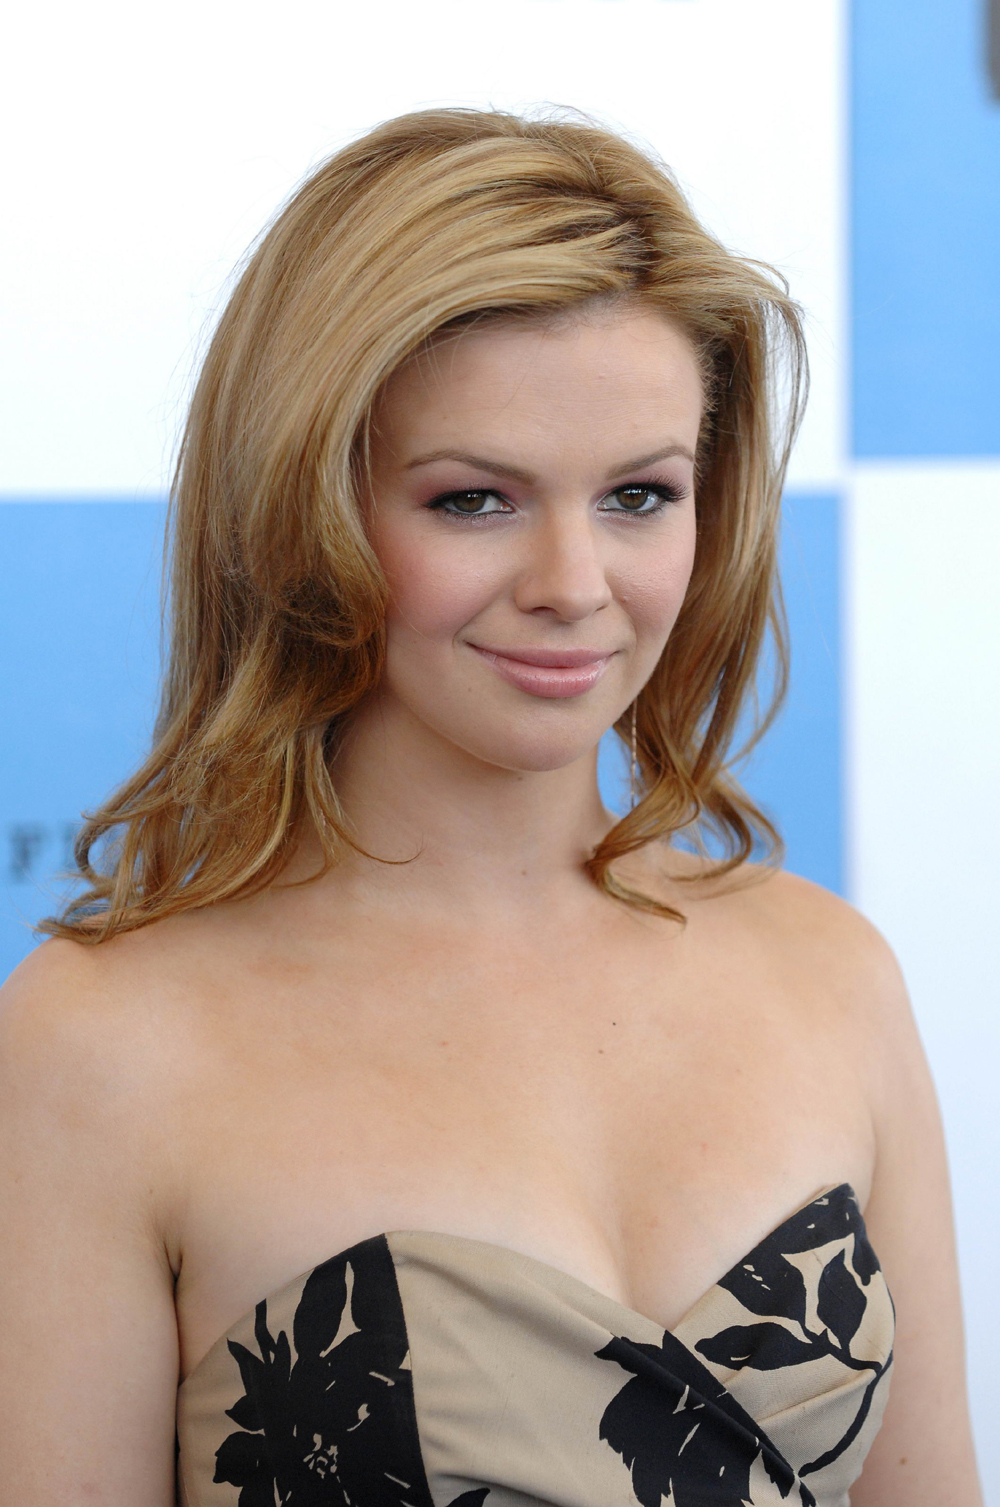 Amber tamblyn nude pics photos